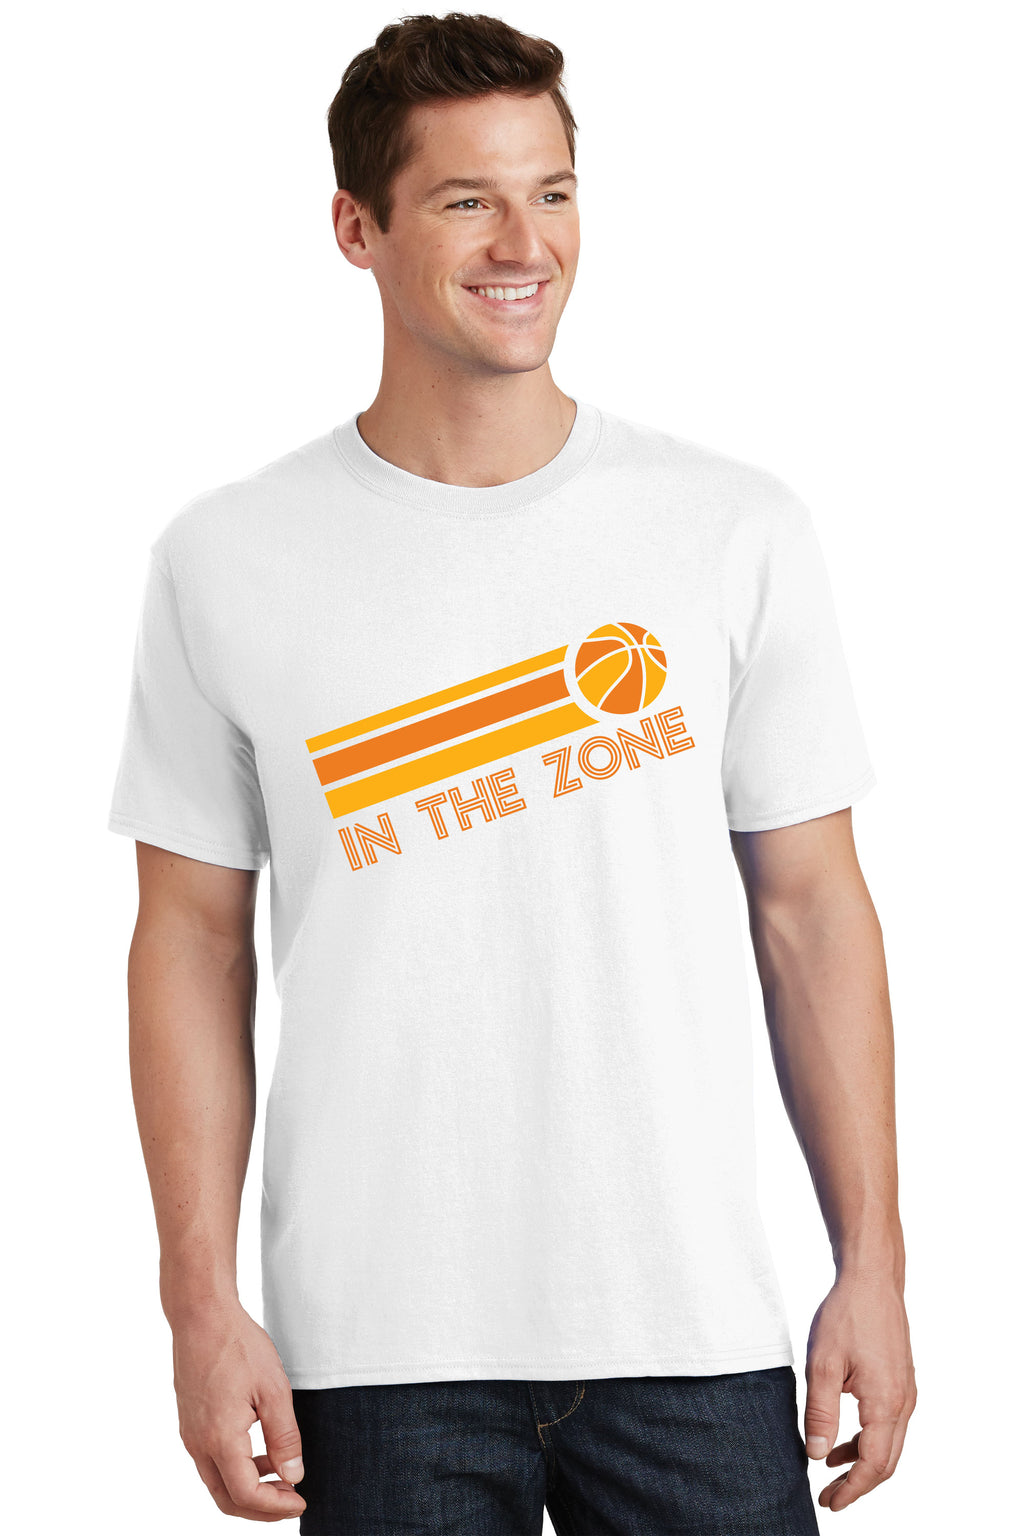 IN THE ZONE - MEN